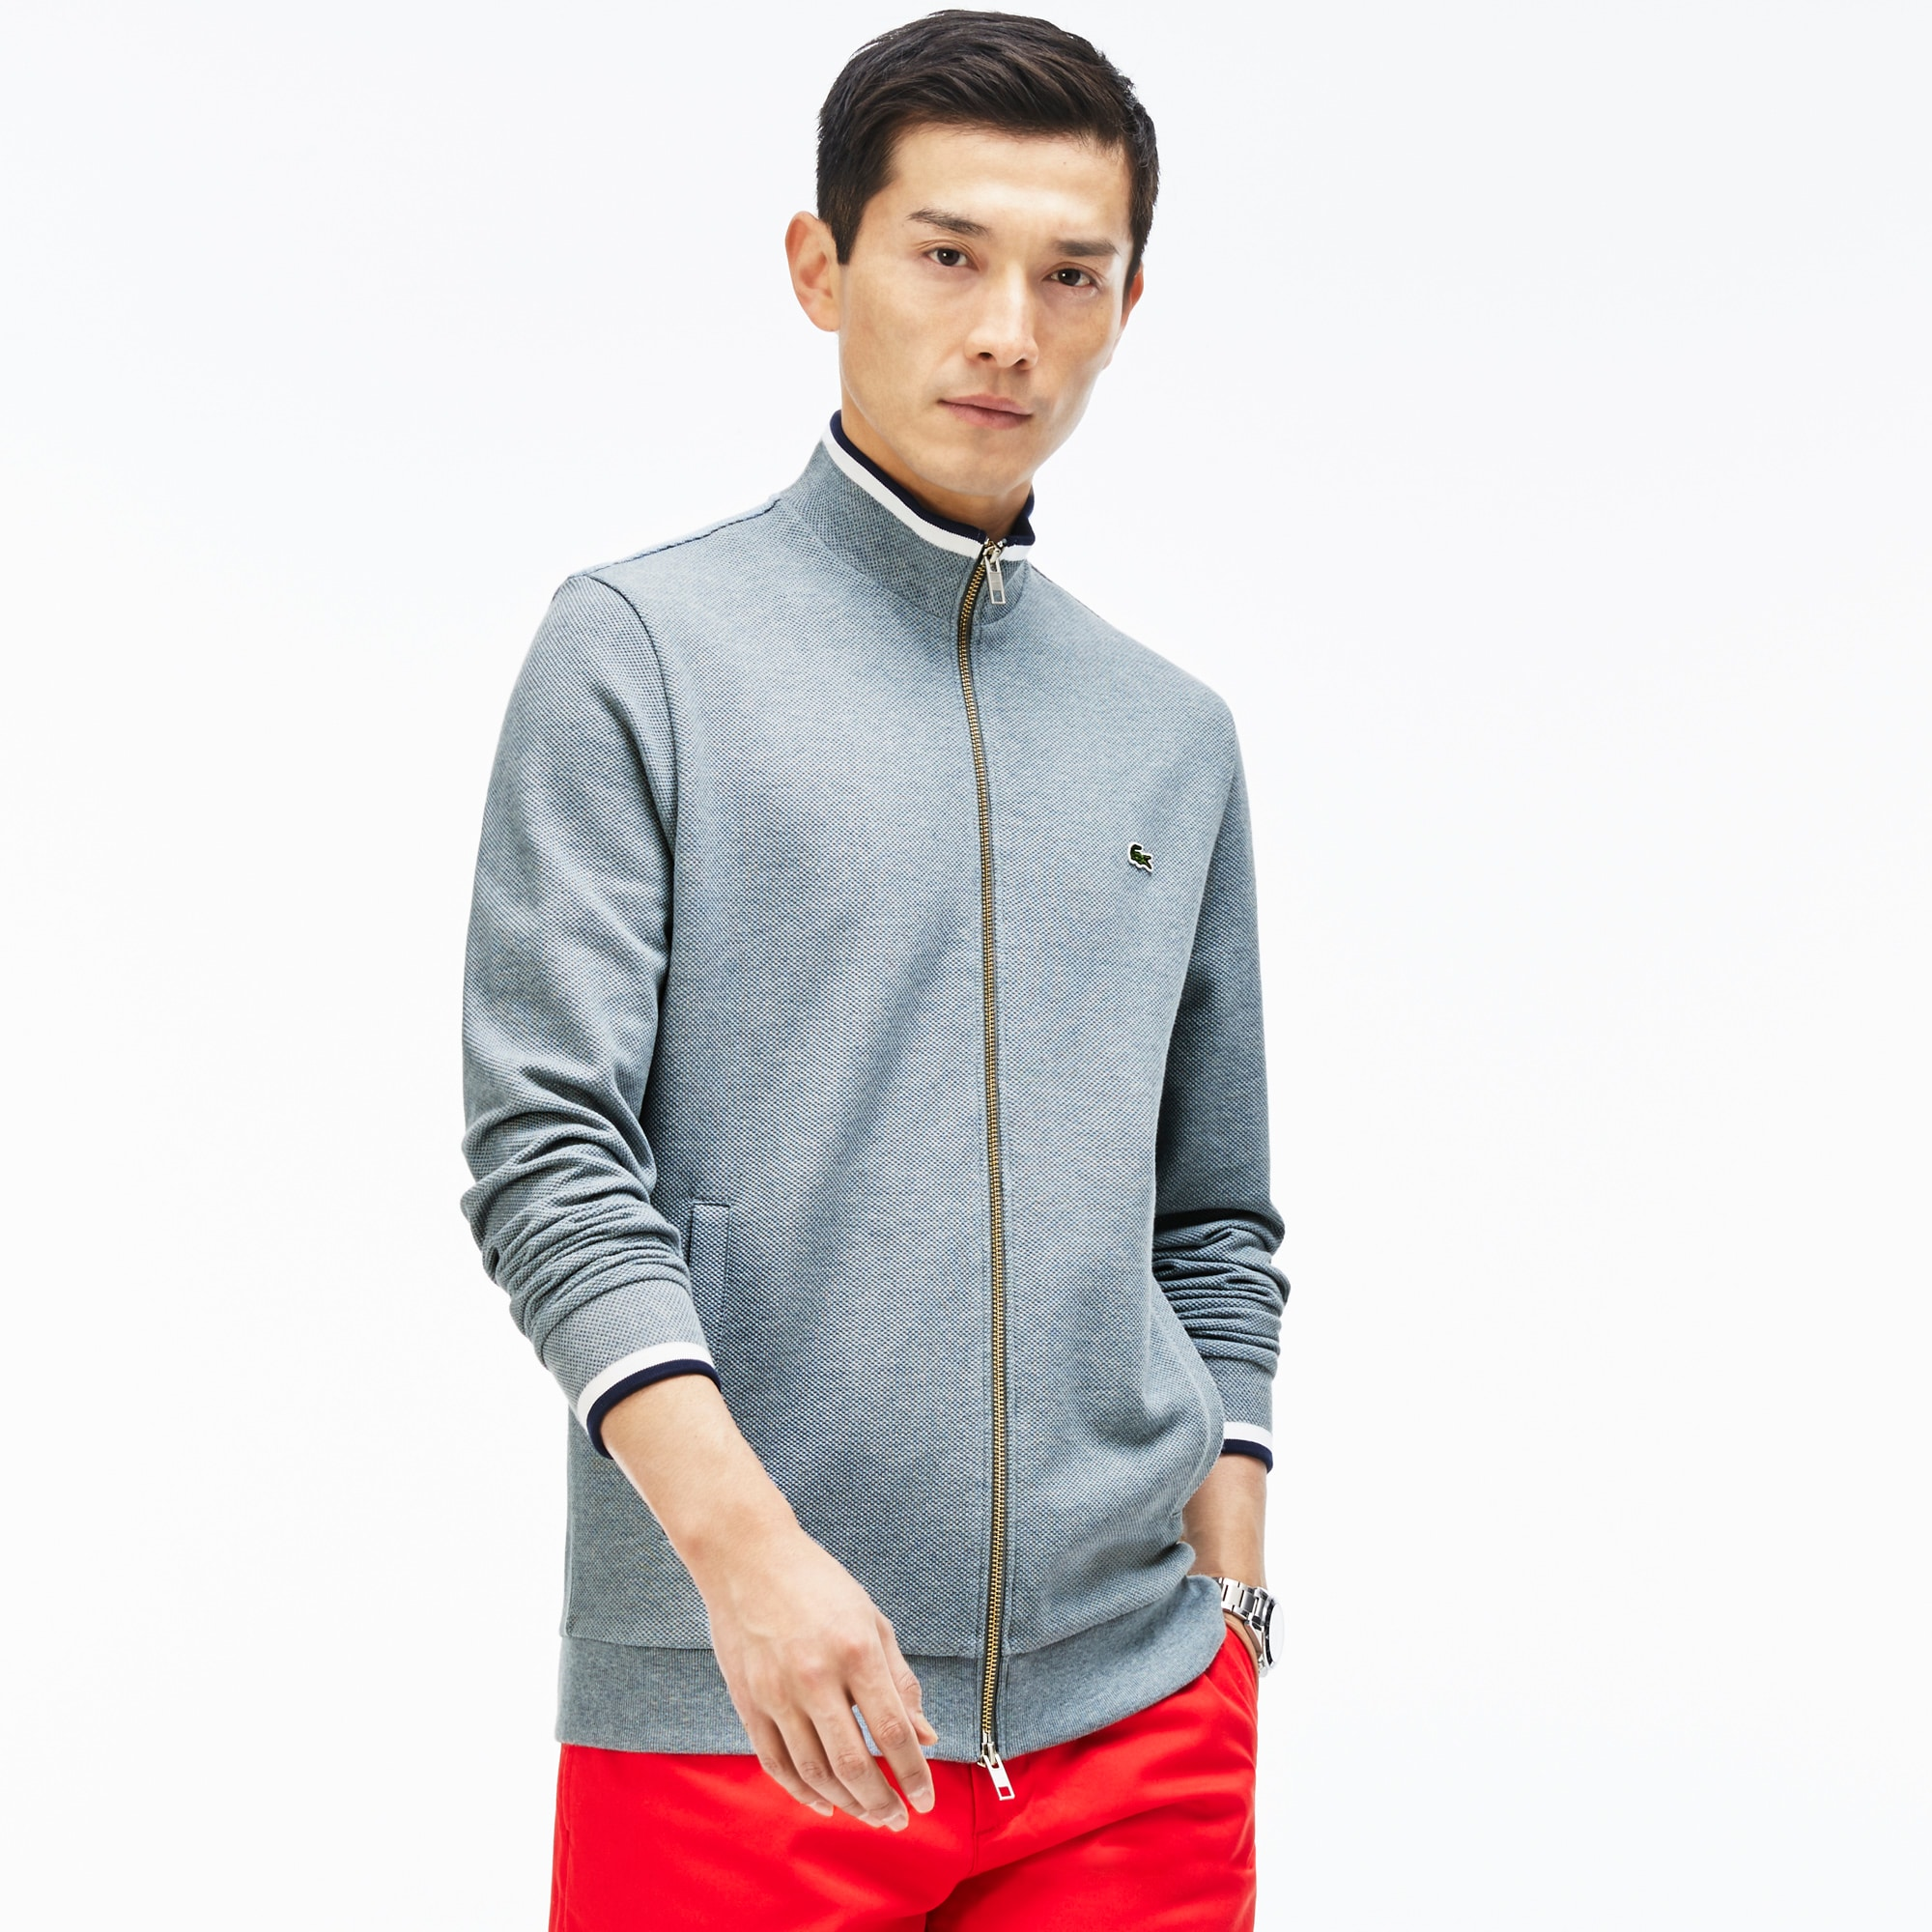 Men's Contrast Finishes Zippered Fleece Sweatshirt